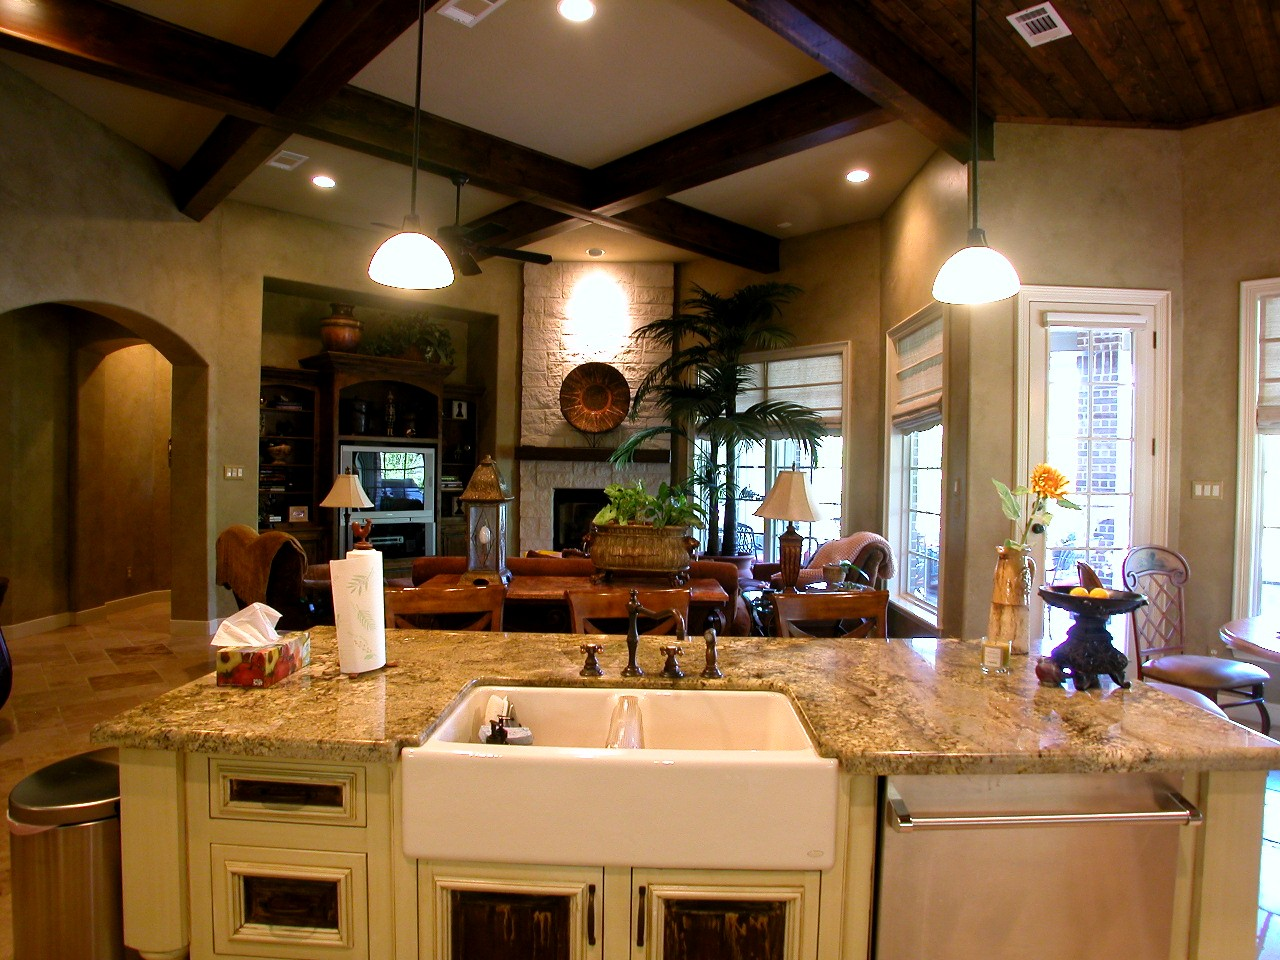 This is the page for Great kitchen design ideas